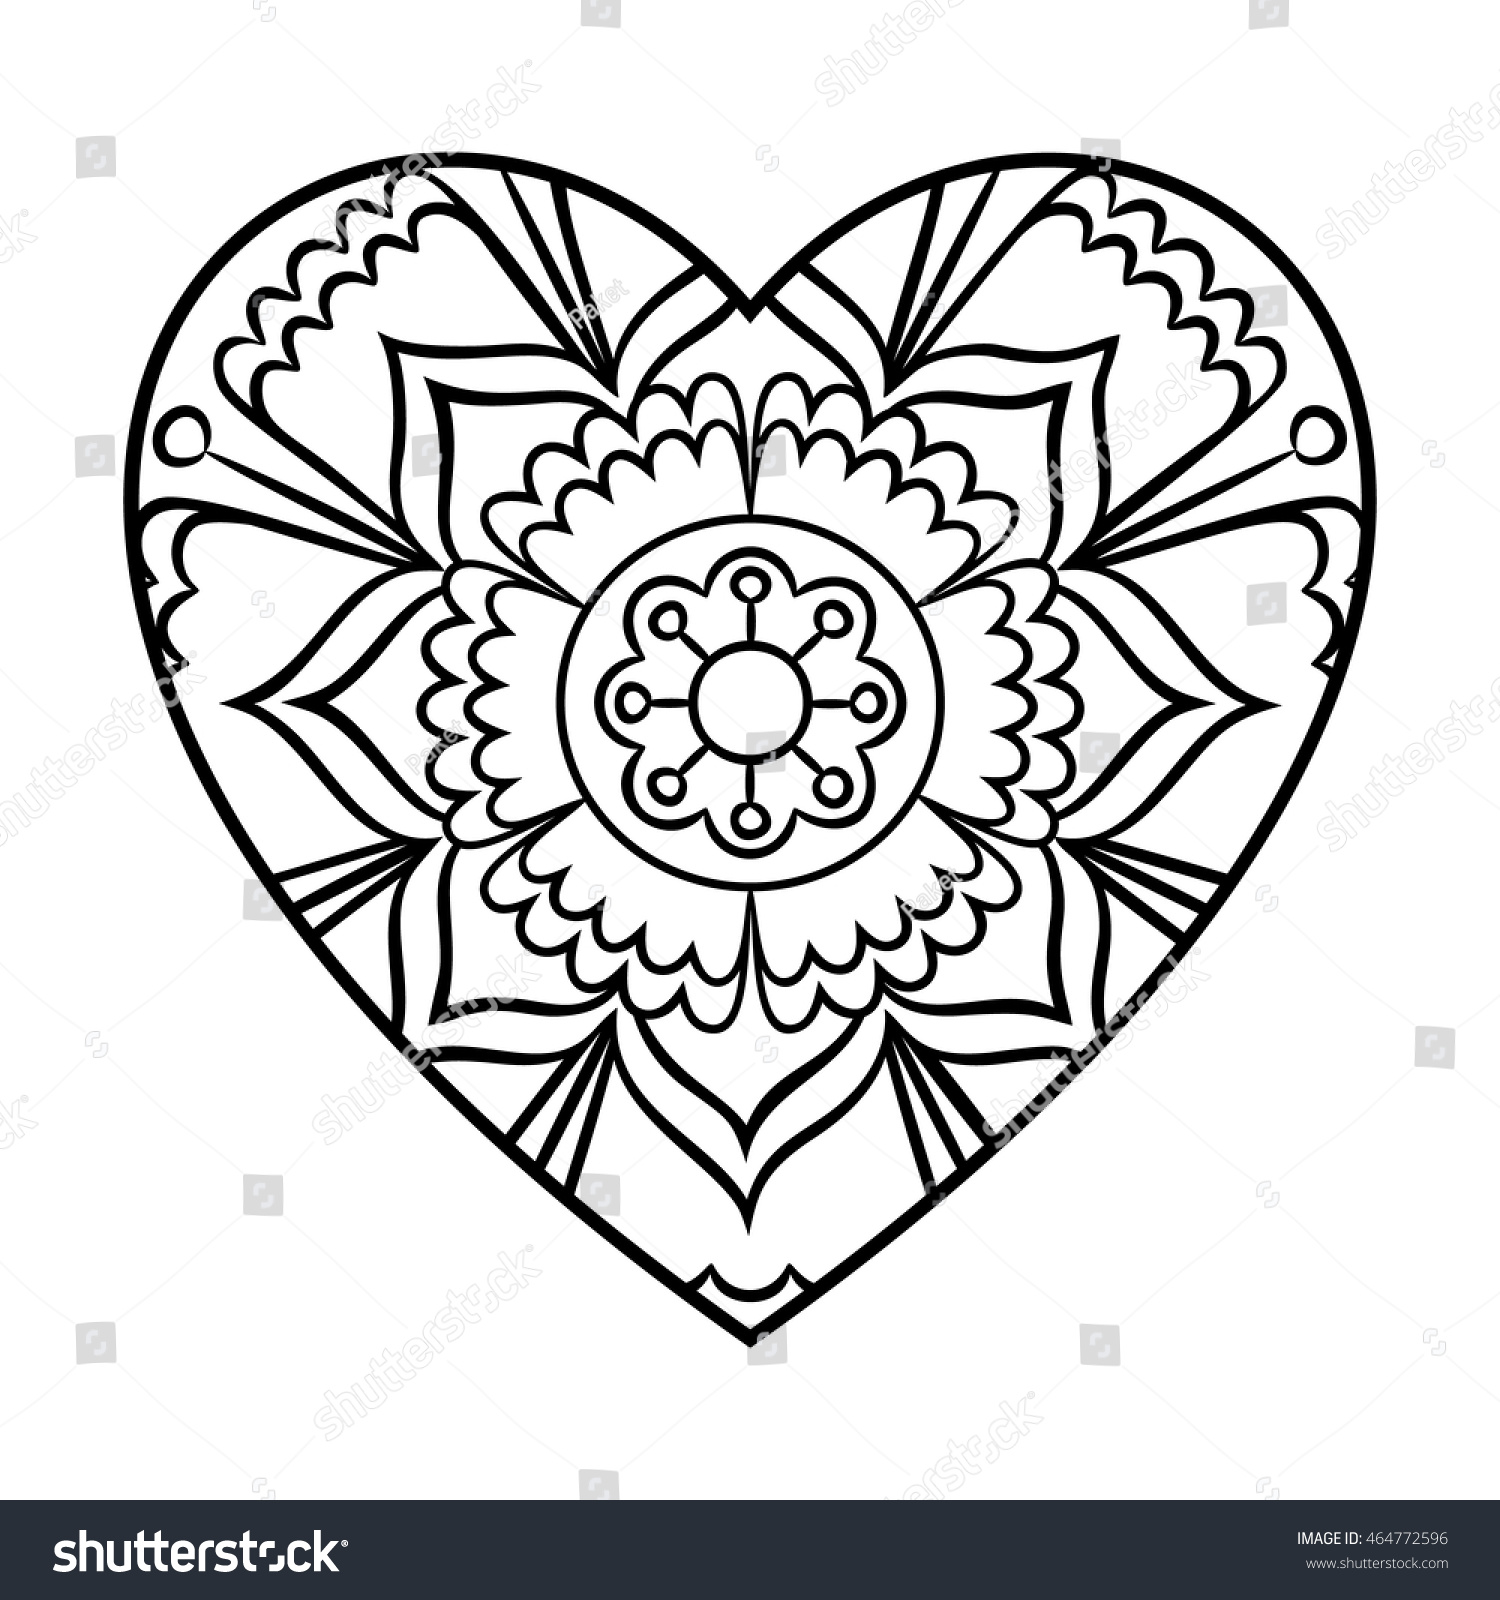 Doodle Heart Mandala Coloring Page Outline Stock Vector (Royalty ...